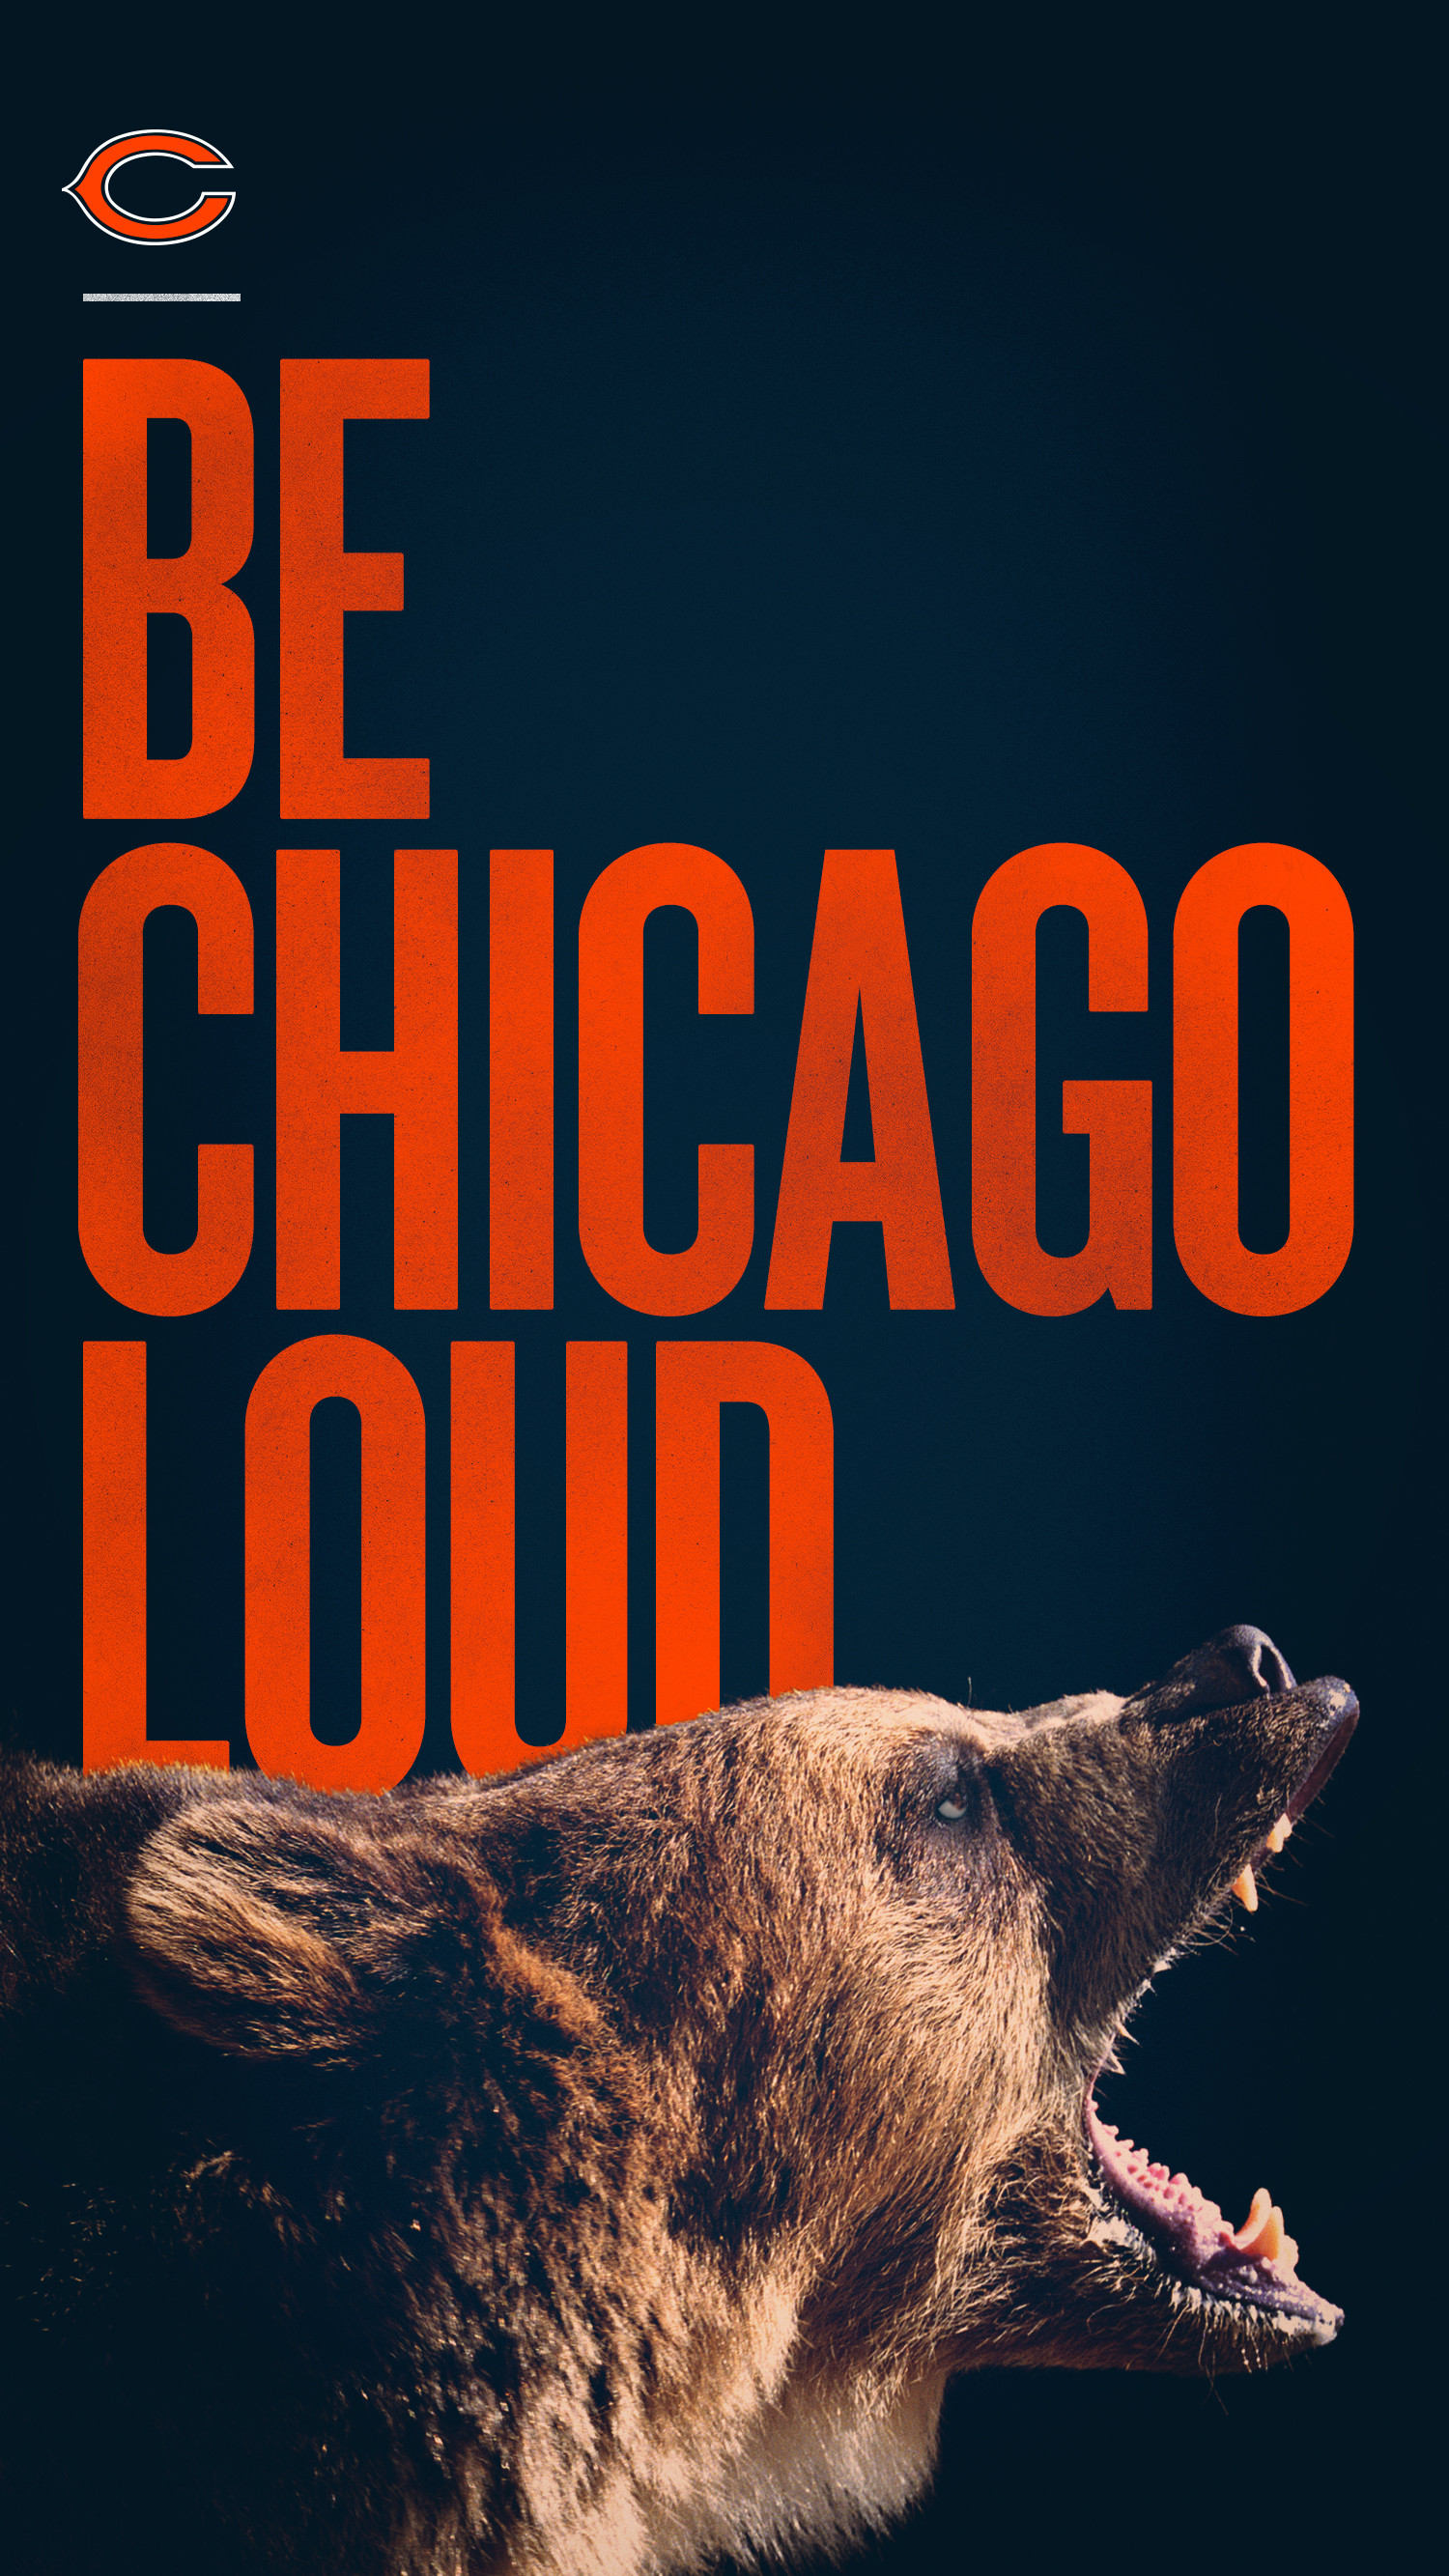 Shout it out and let the world know with this Chicago Bears smartphone  wallpaper from